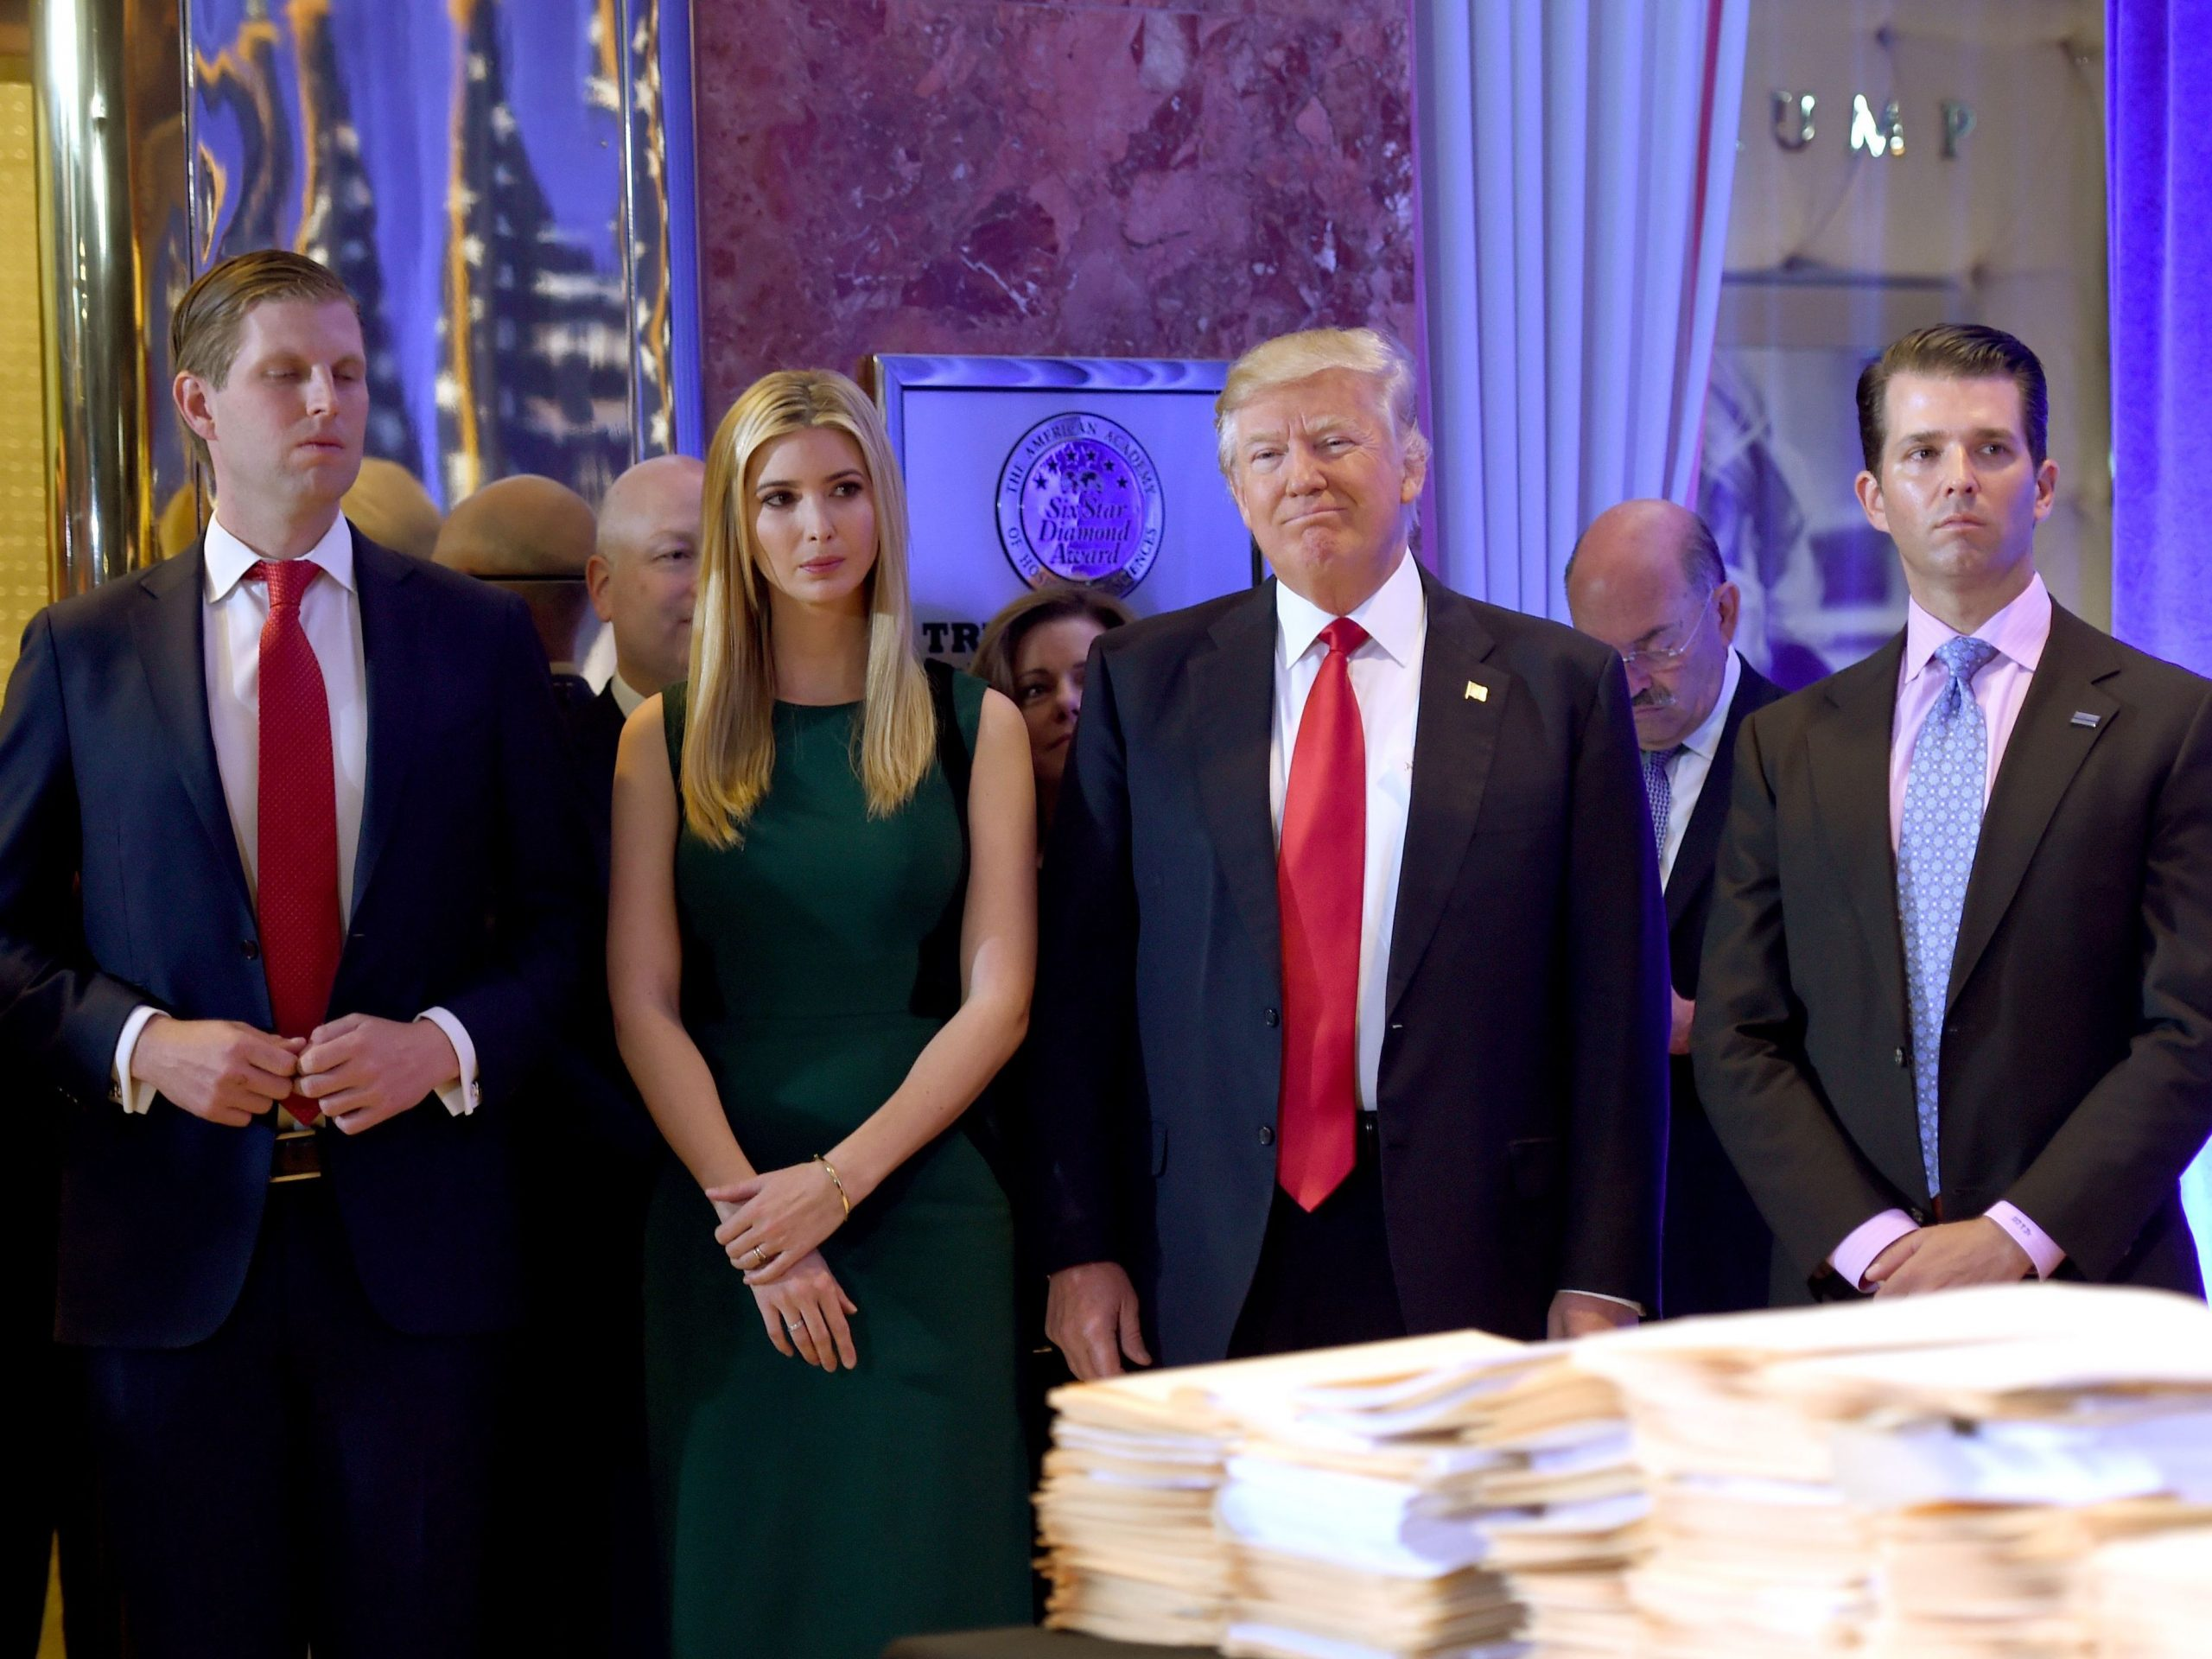 """President Trump, pictured with his children Eric, Ivanka and Donald Jr. in January 2017, said Thursday on Twitter that """"I won't settle this case!"""""""